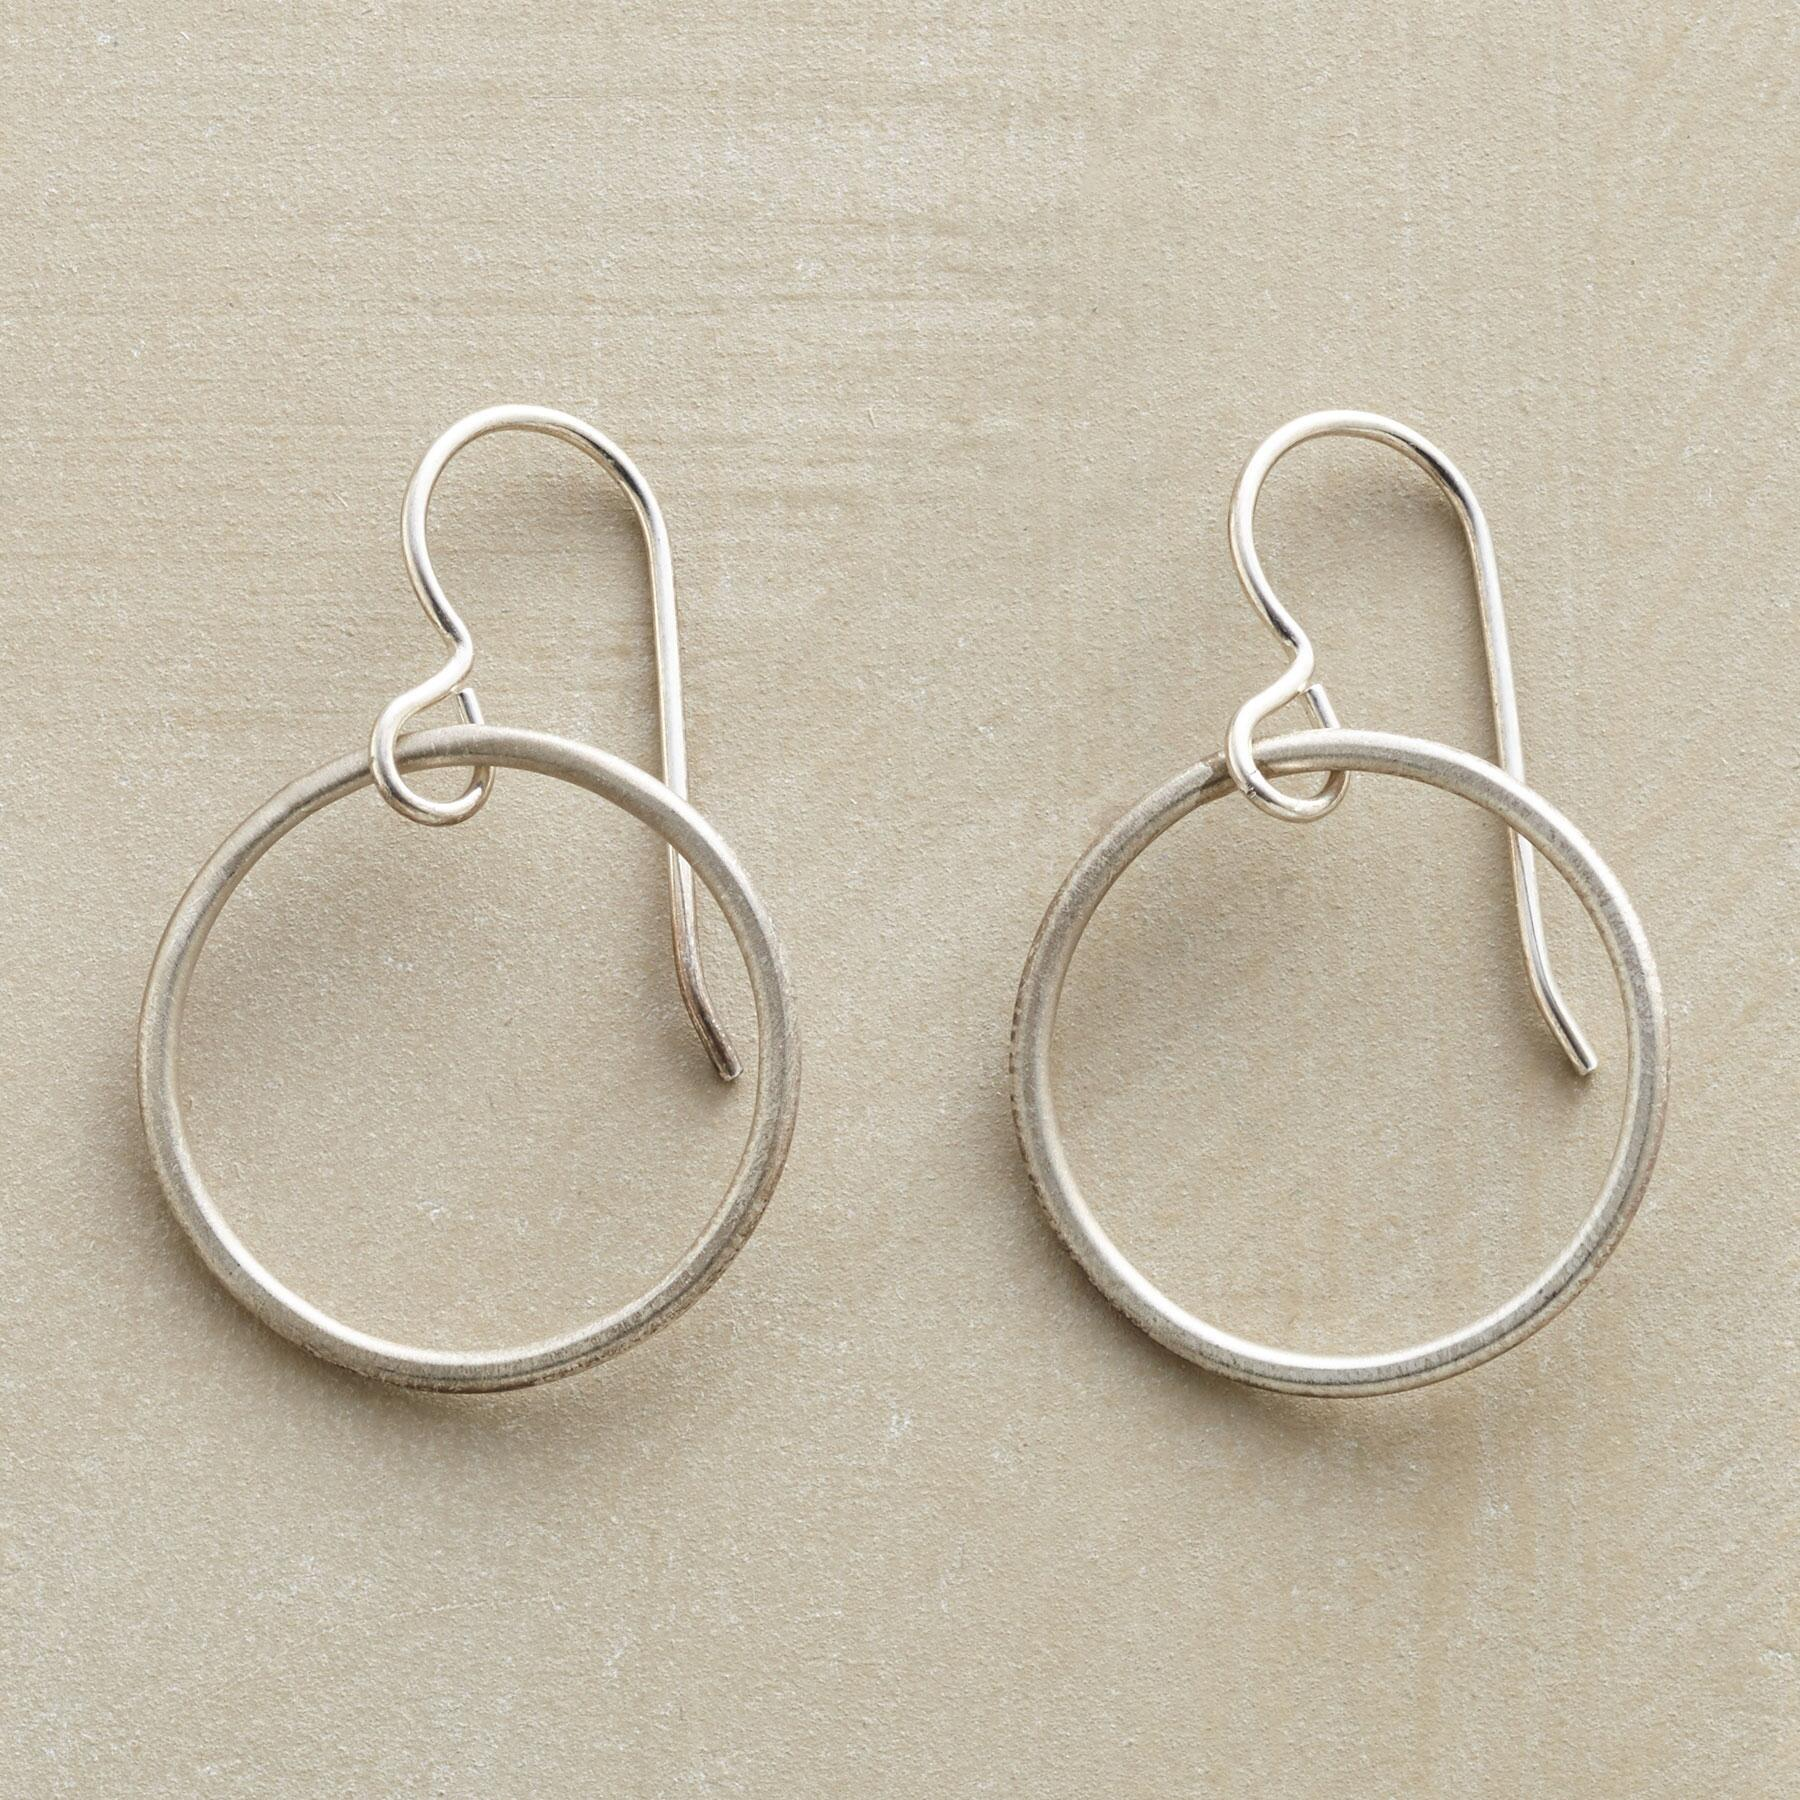 RECIRCLED EARRINGS: View 1